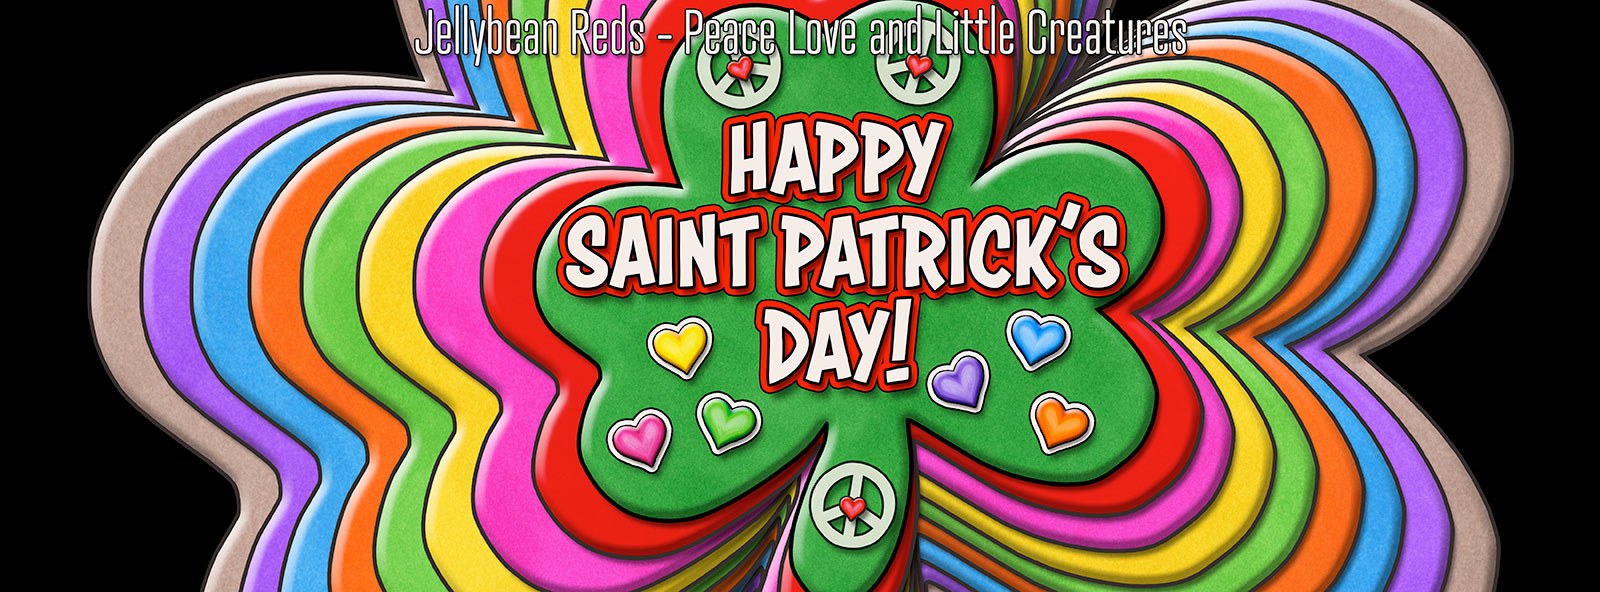 Happy Saint Patrick's Day - Rainbow Shamrocks with Peace Signs and Hearts